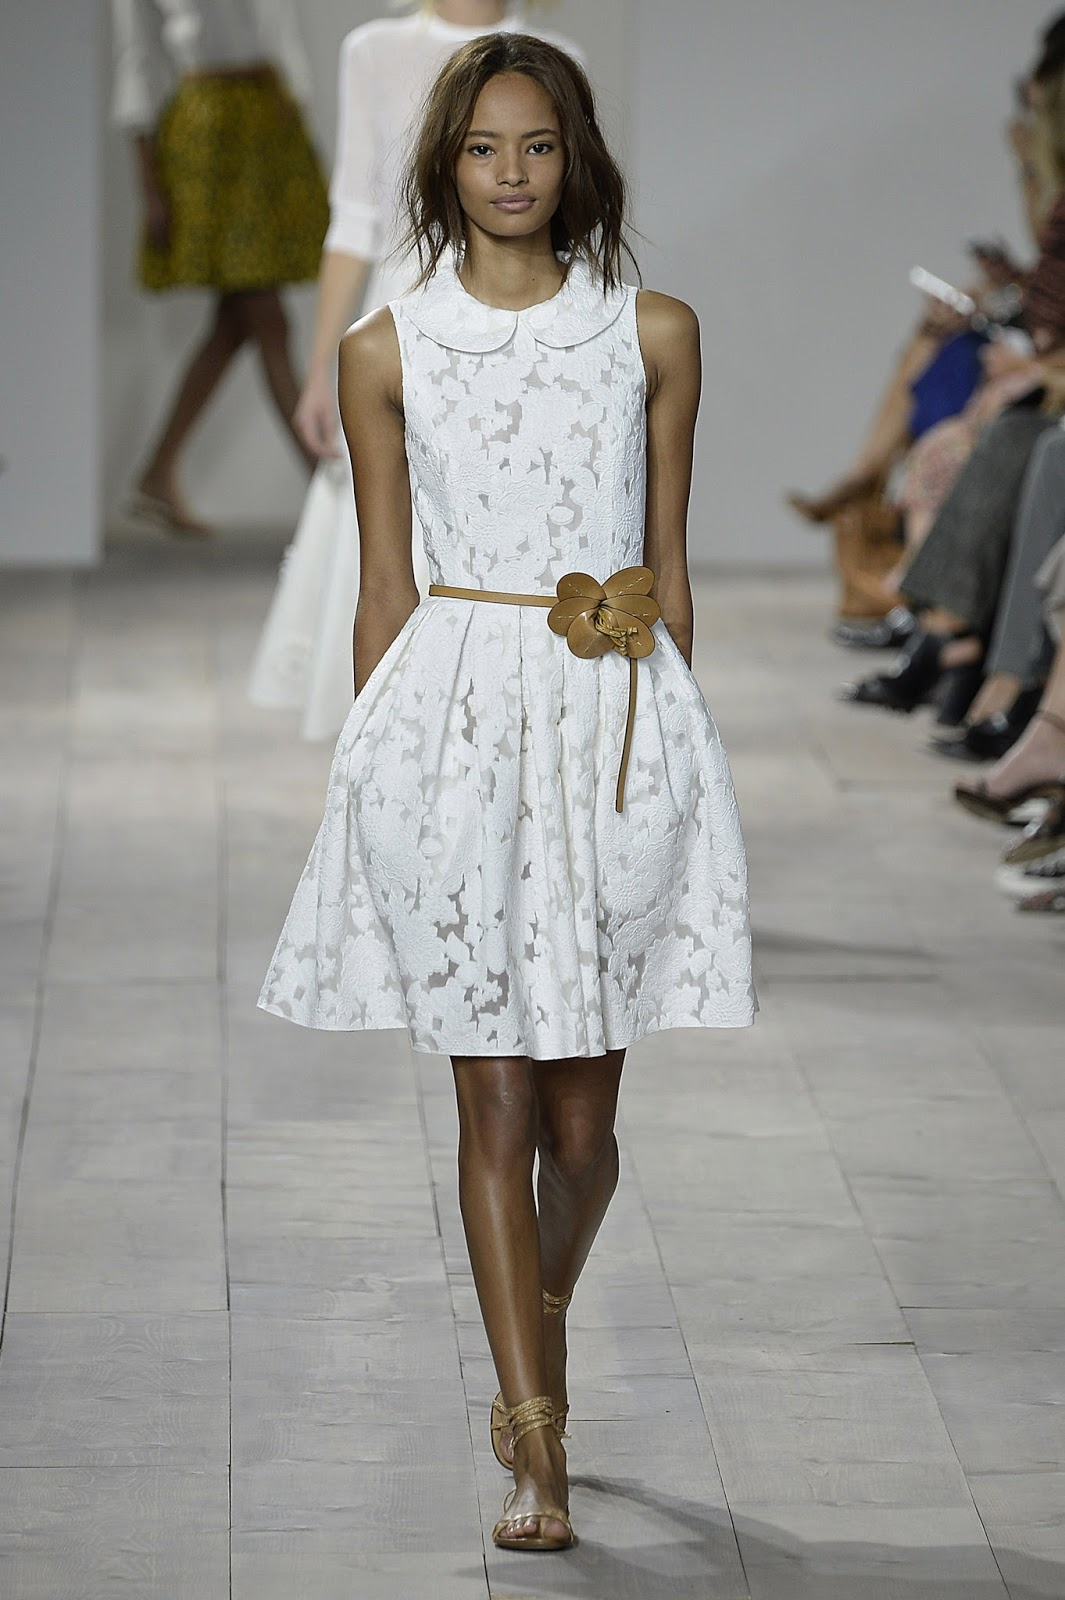 Eniwhere Fashion - Michael Kors Spring Summer 2015